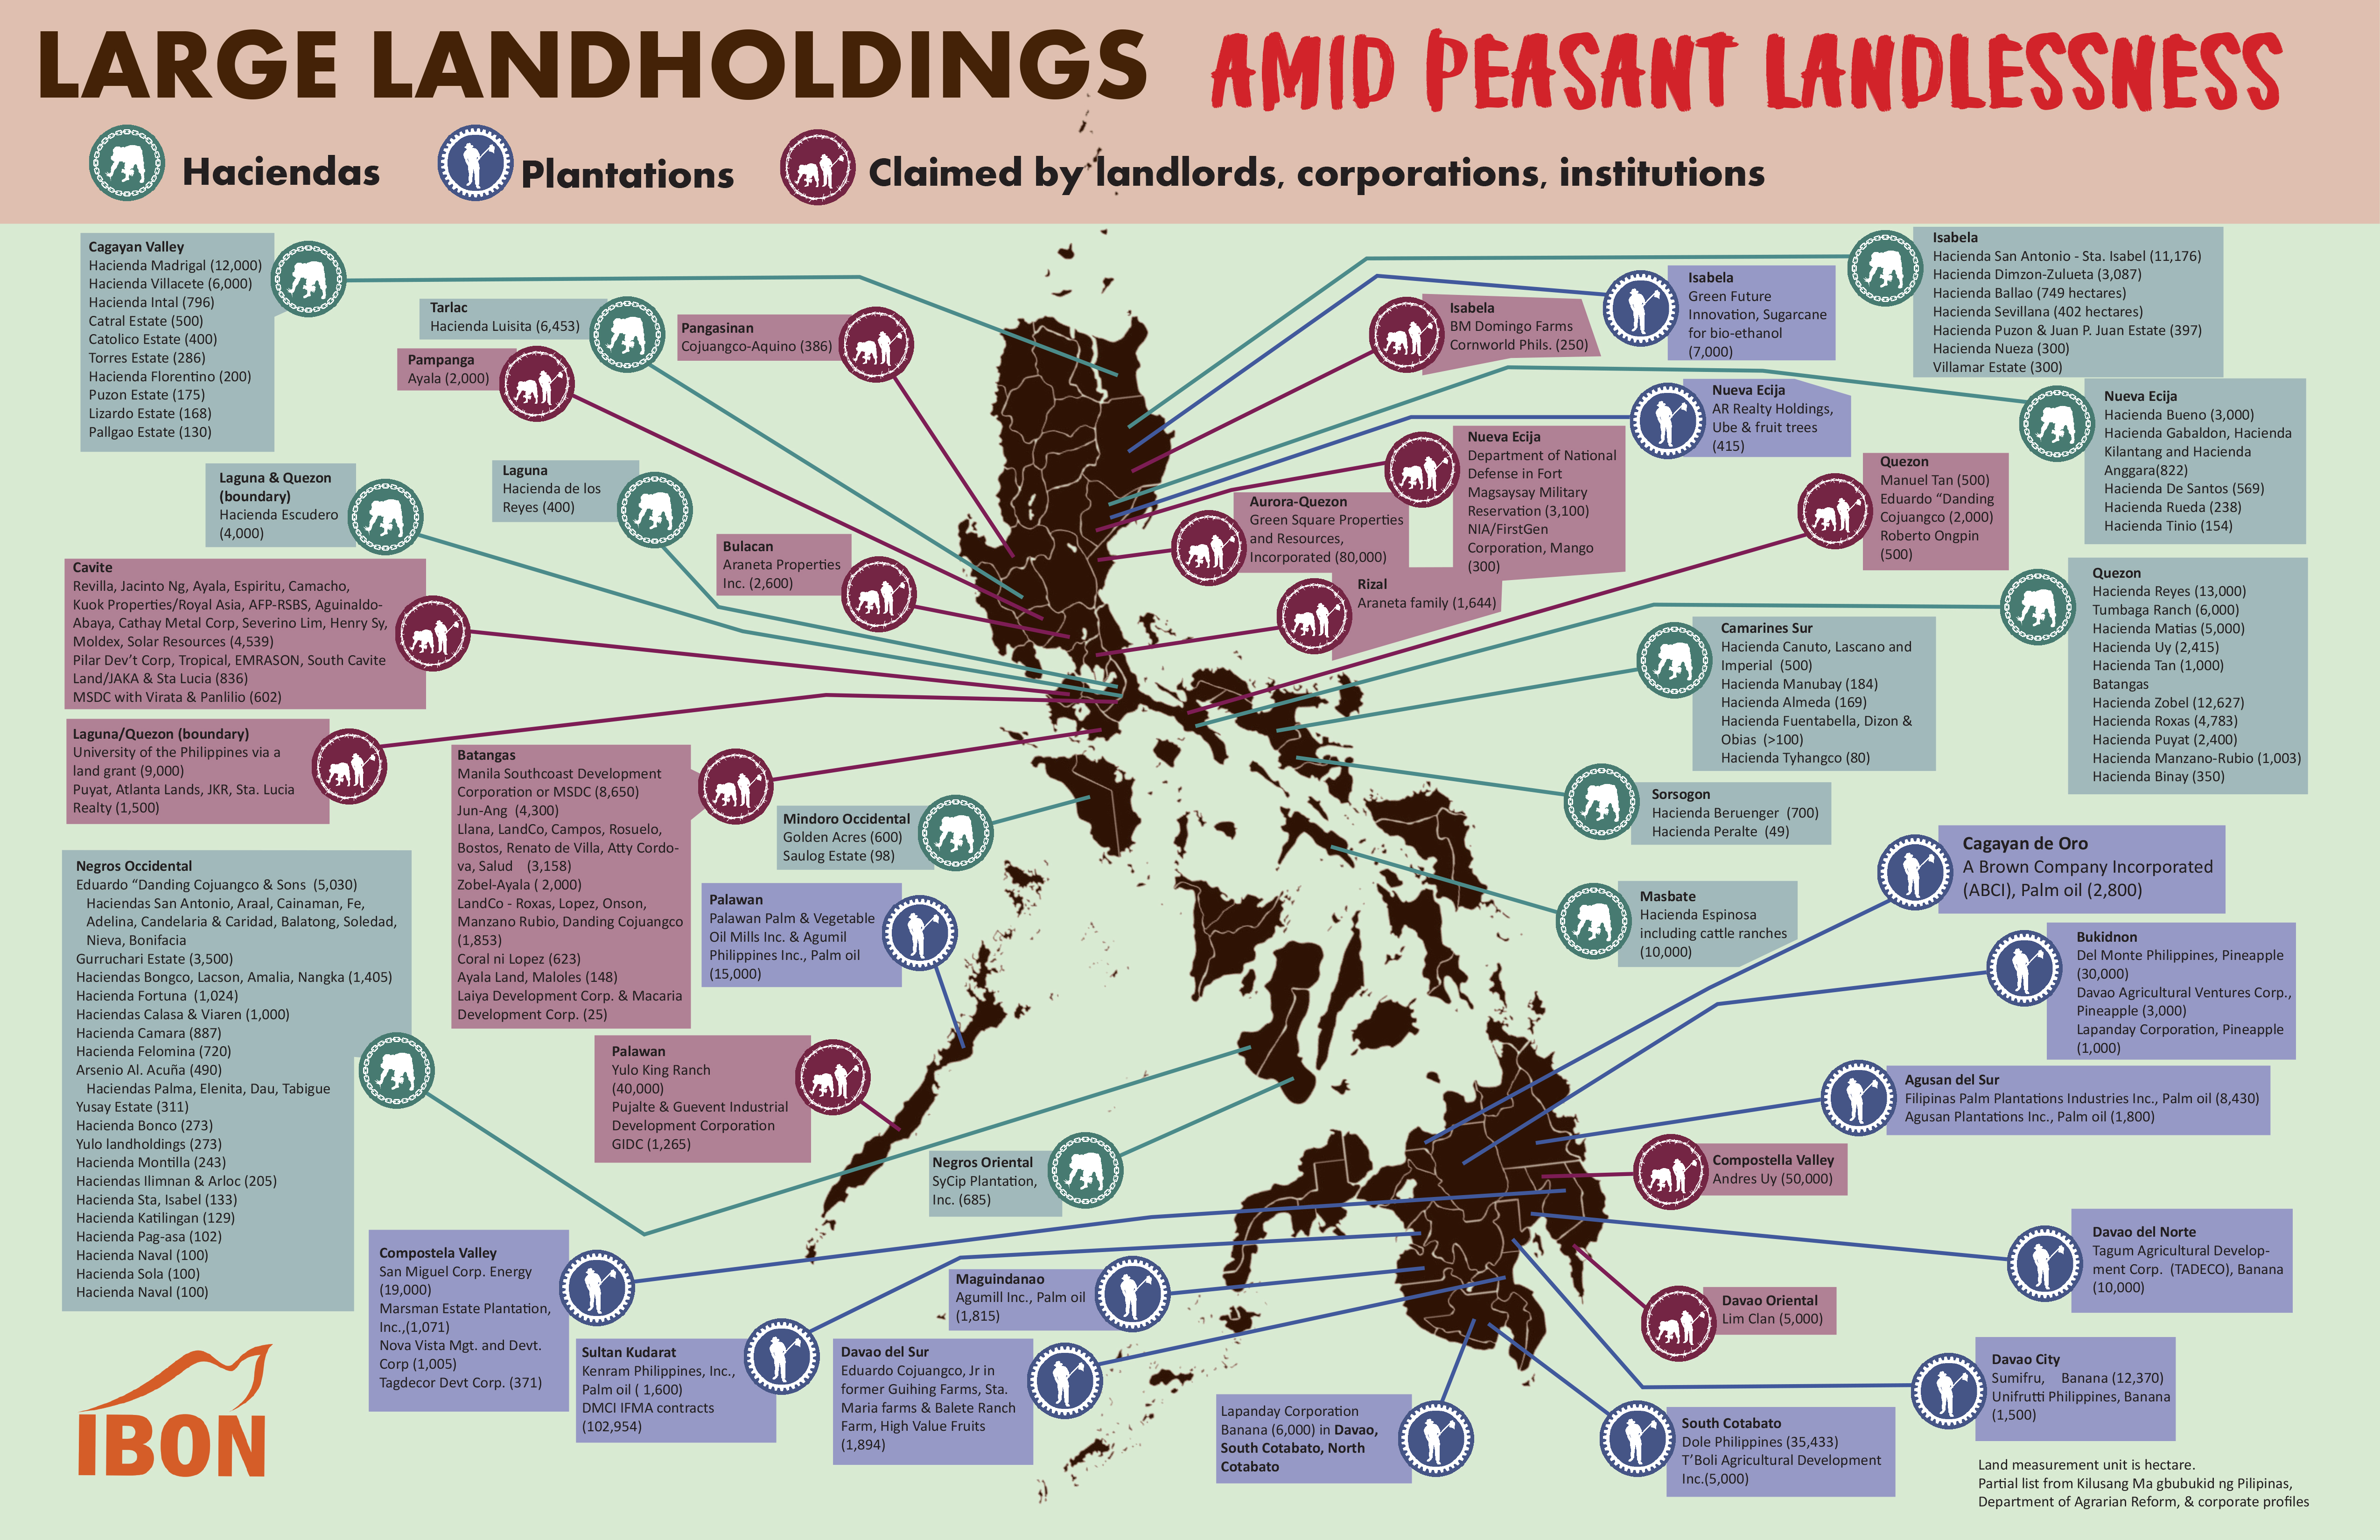 Land holdings 2